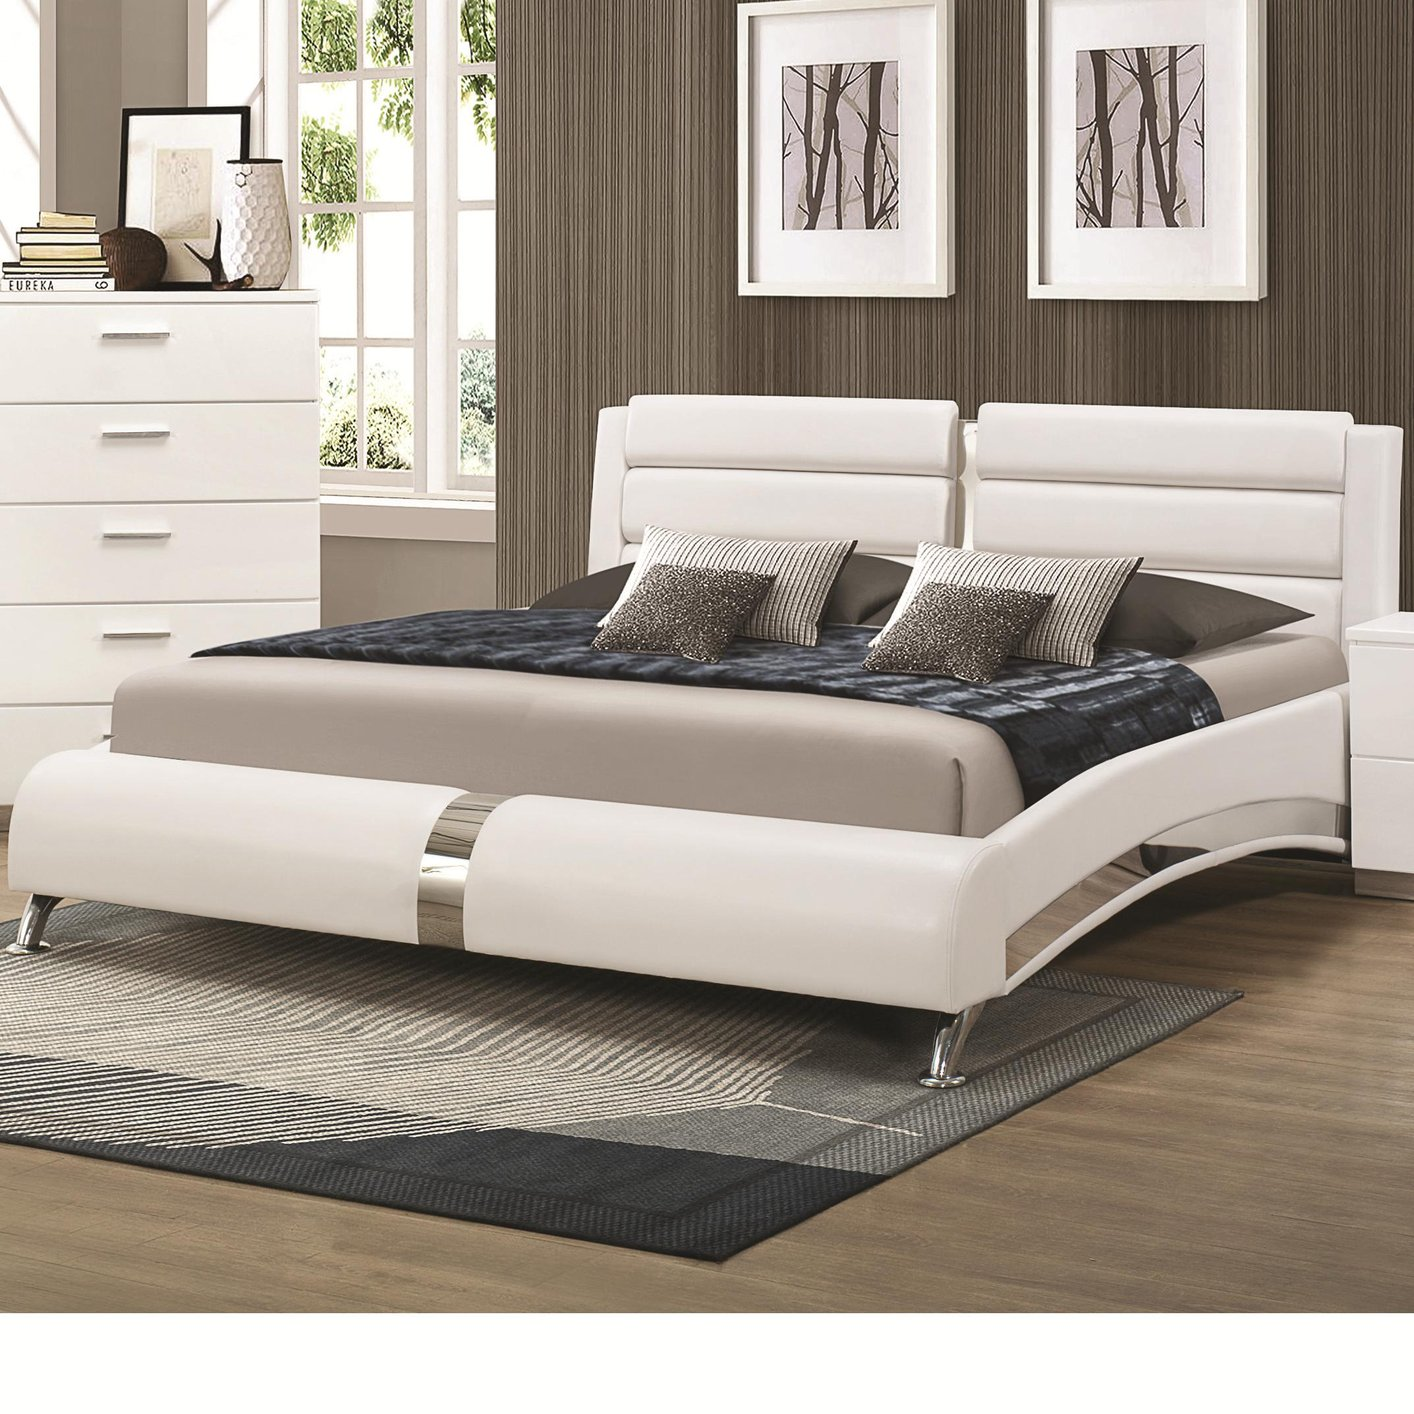 Coaster 300345kw silver california king size wood bed for Bed settings